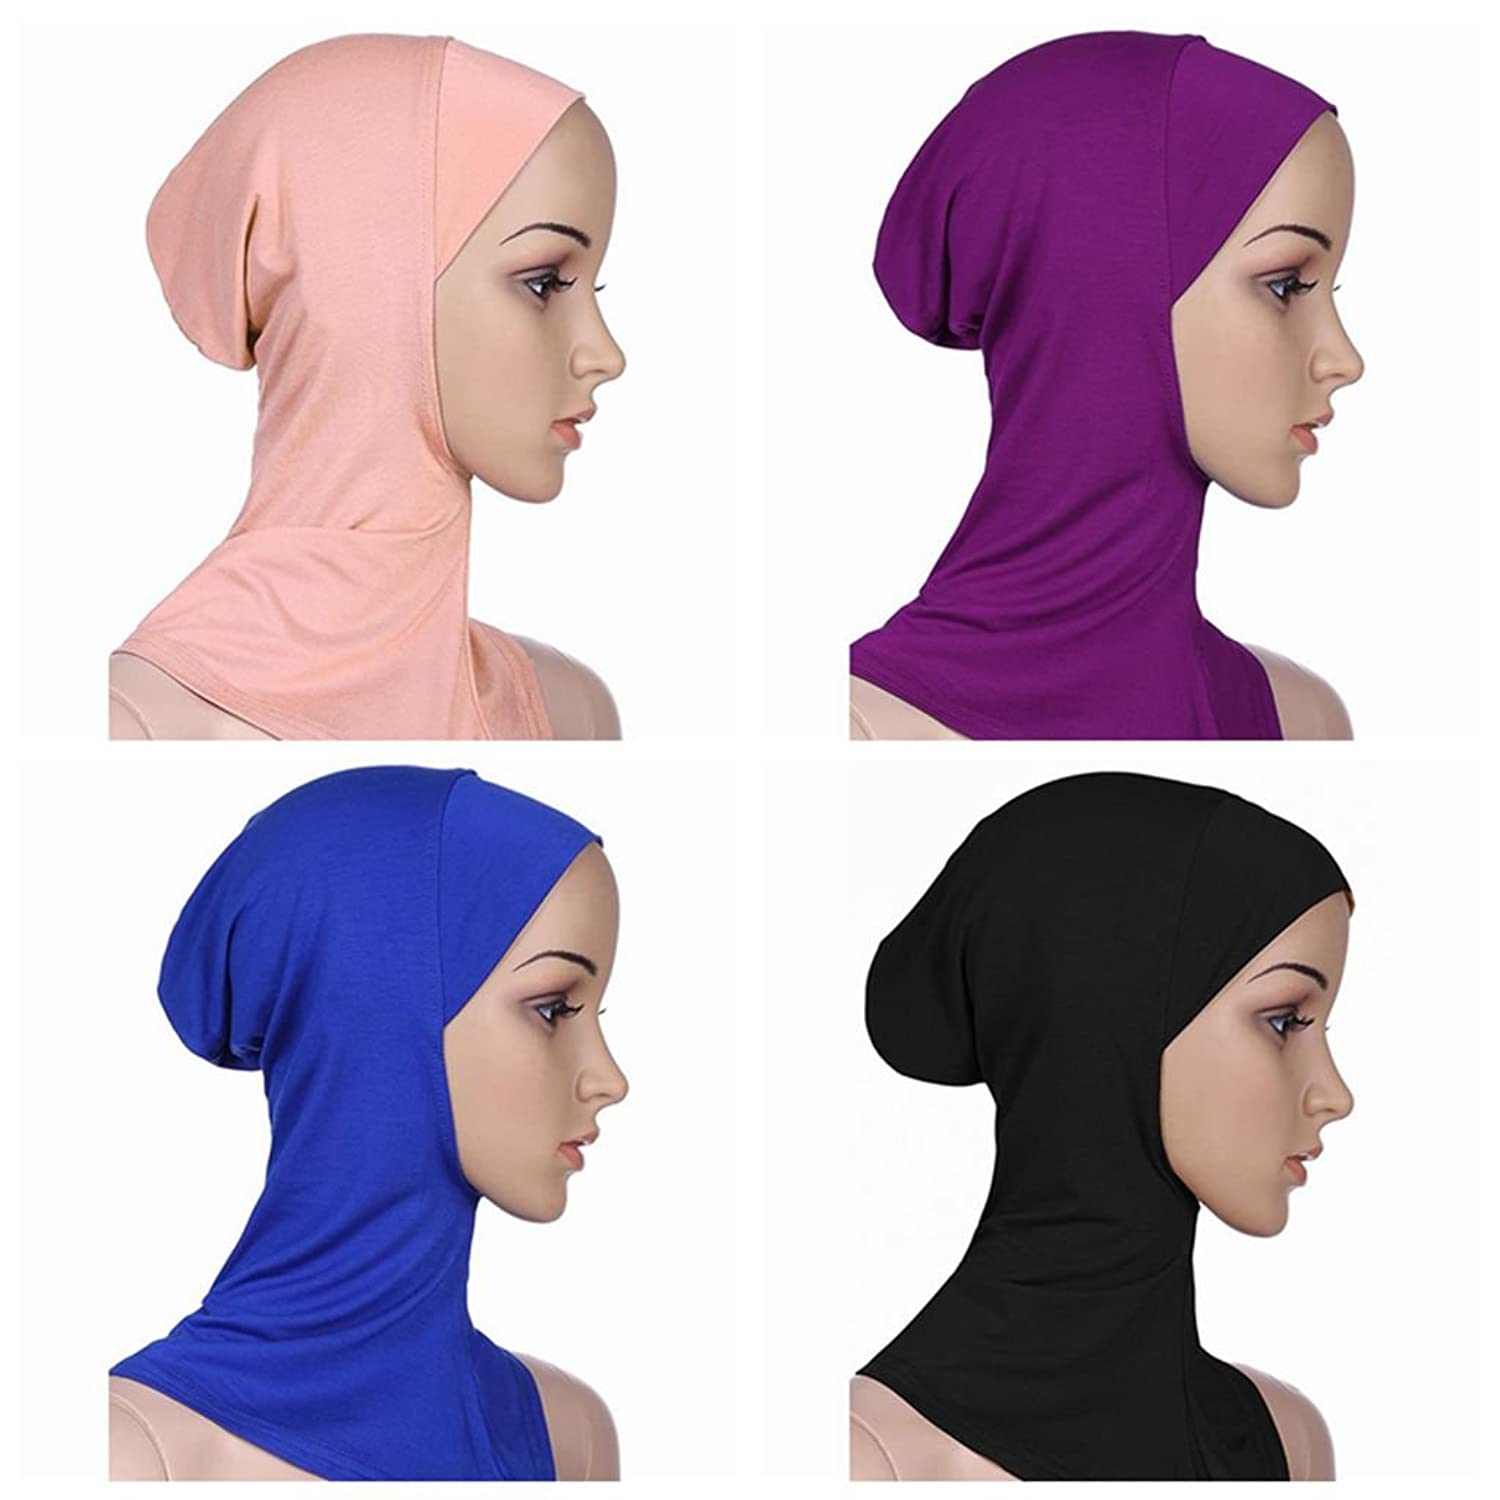 Ksweet 4 x Hijab Caps Women Full Cover Hijab Bonnet Islamic Head Scarves